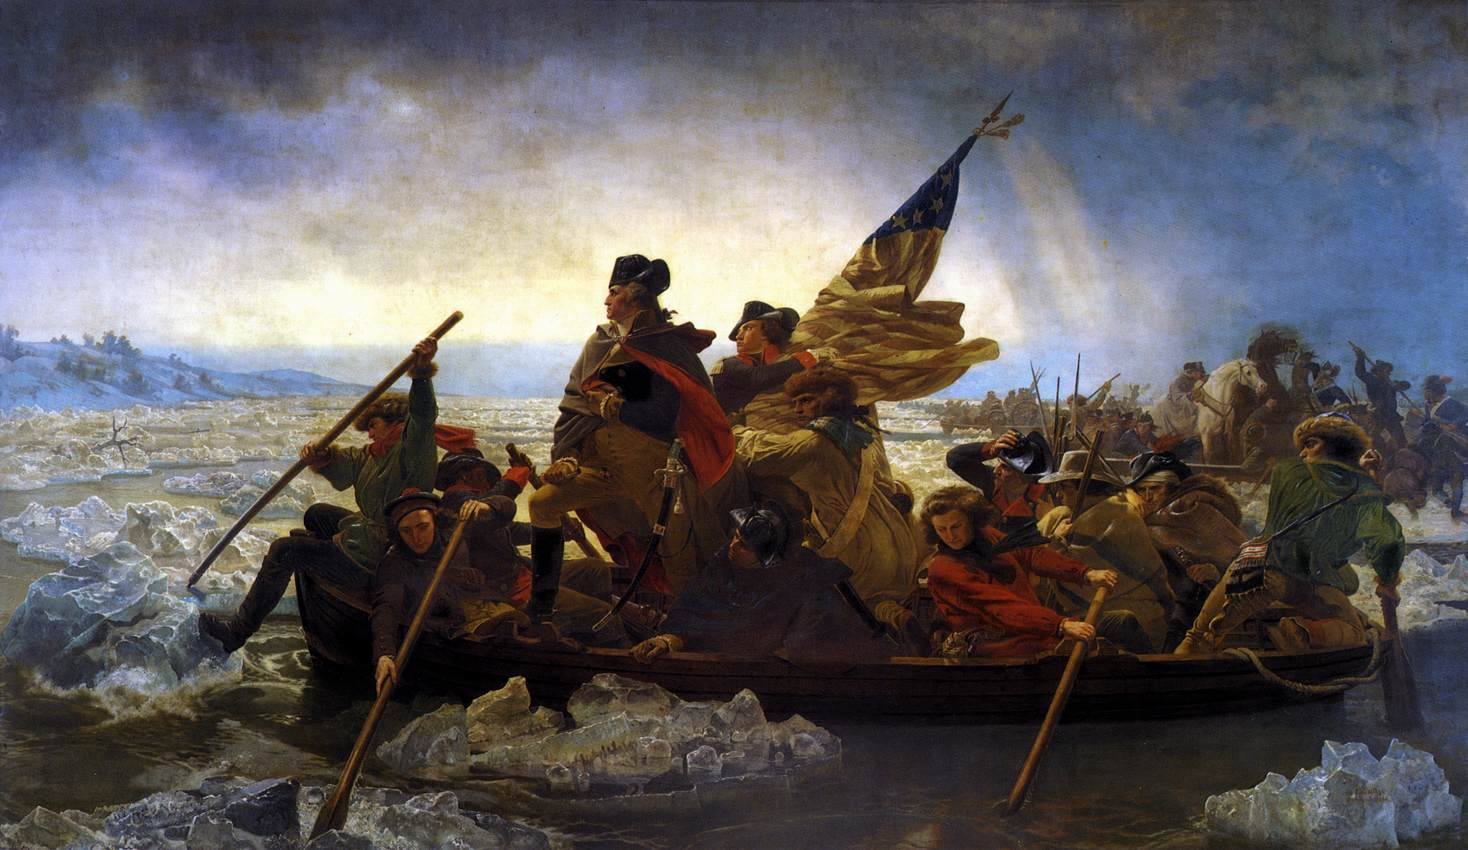 http://www.book530.com/paintingpic/2701/LEUTZE-Emanuel-Gottlieb-Washington-Crossing-the.jpg